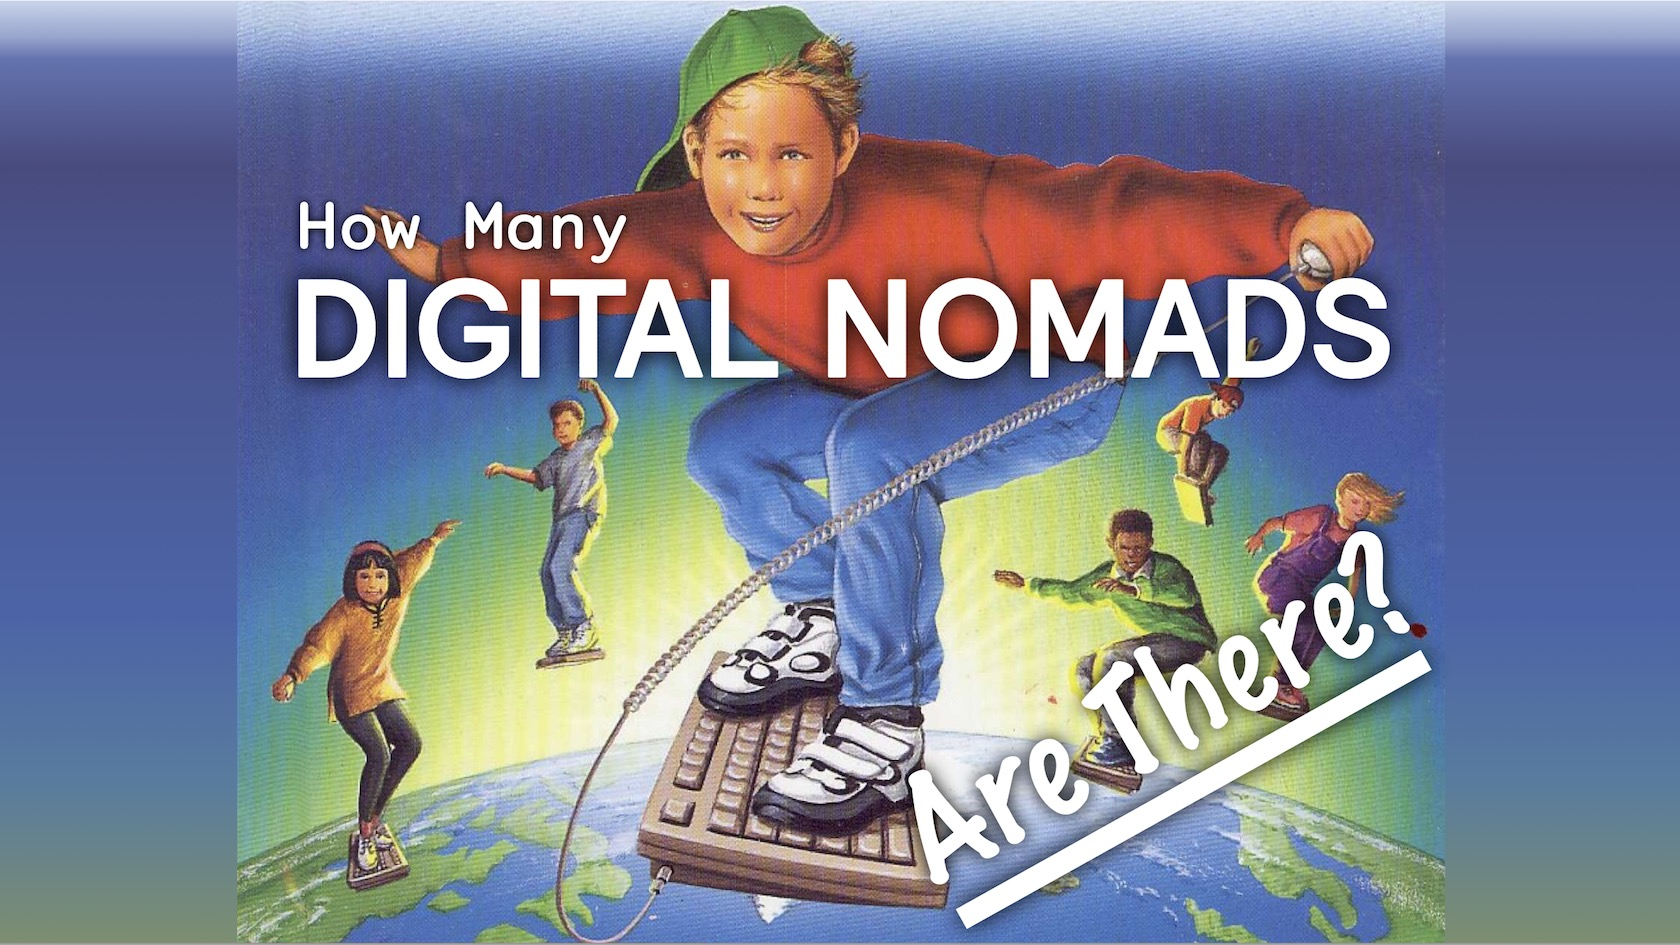 How Many Digital Nomads Are There?